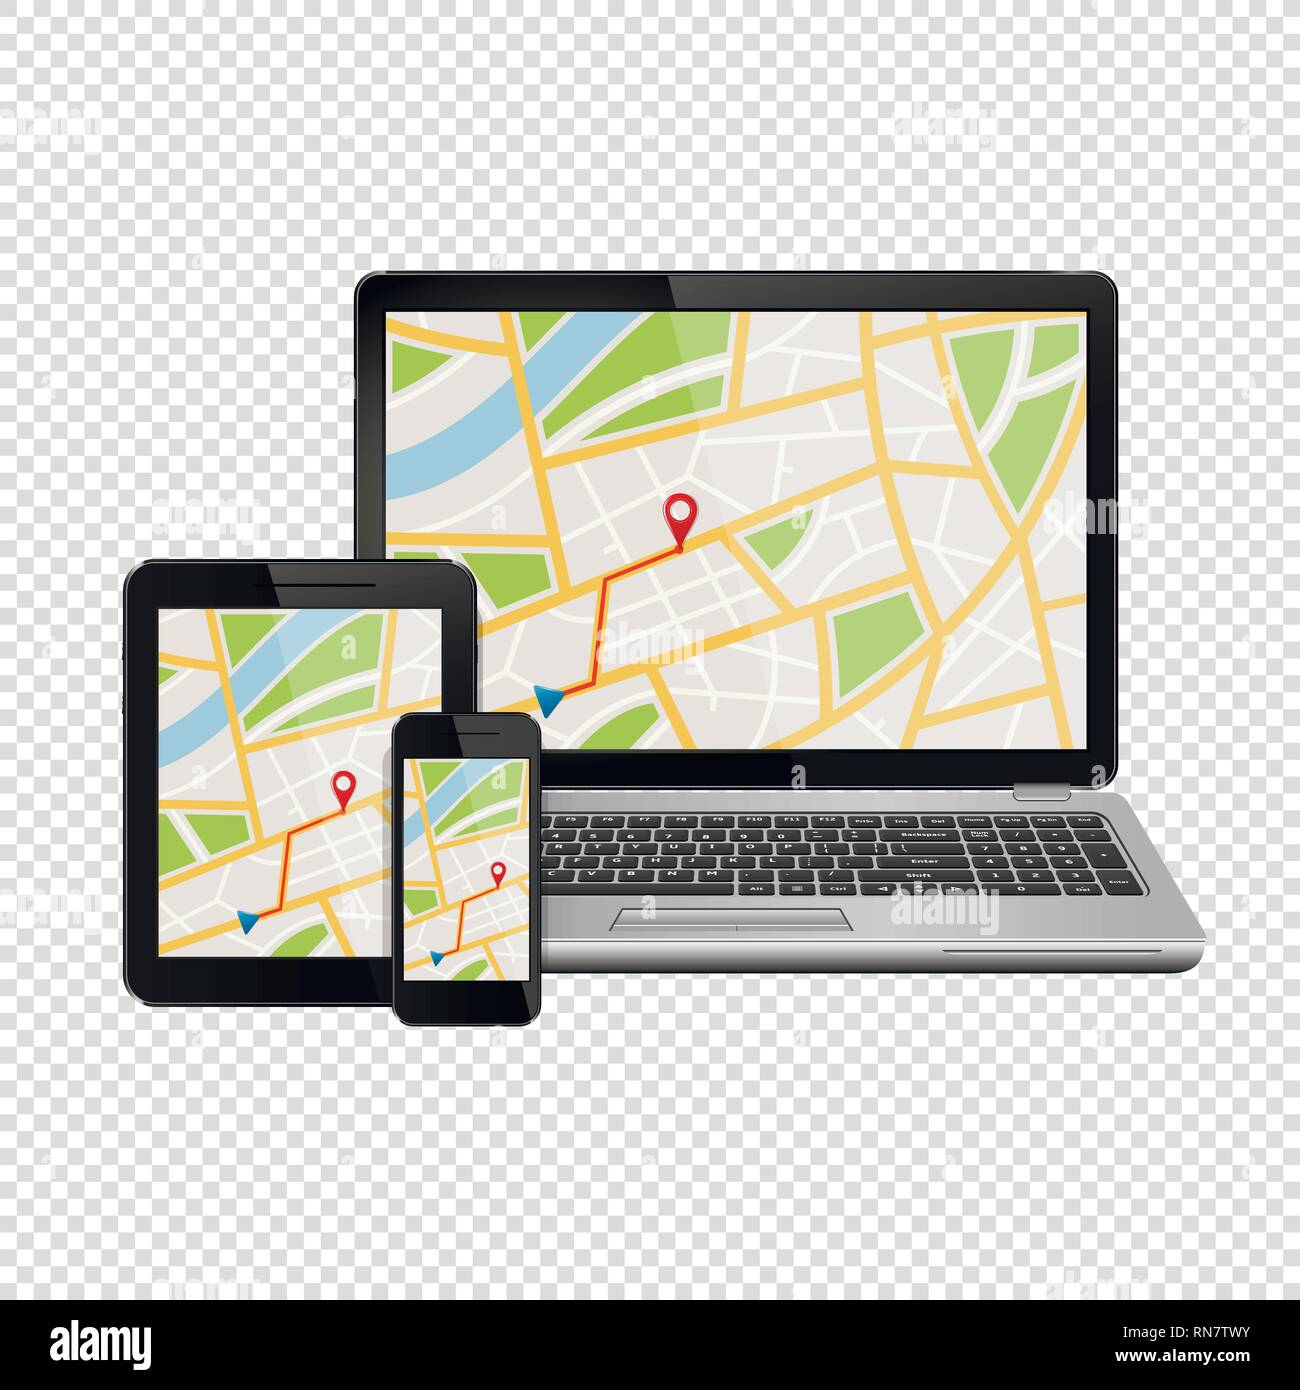 GPS navigation map on display of modern digital devices isolated on transparent background - Stock Vector